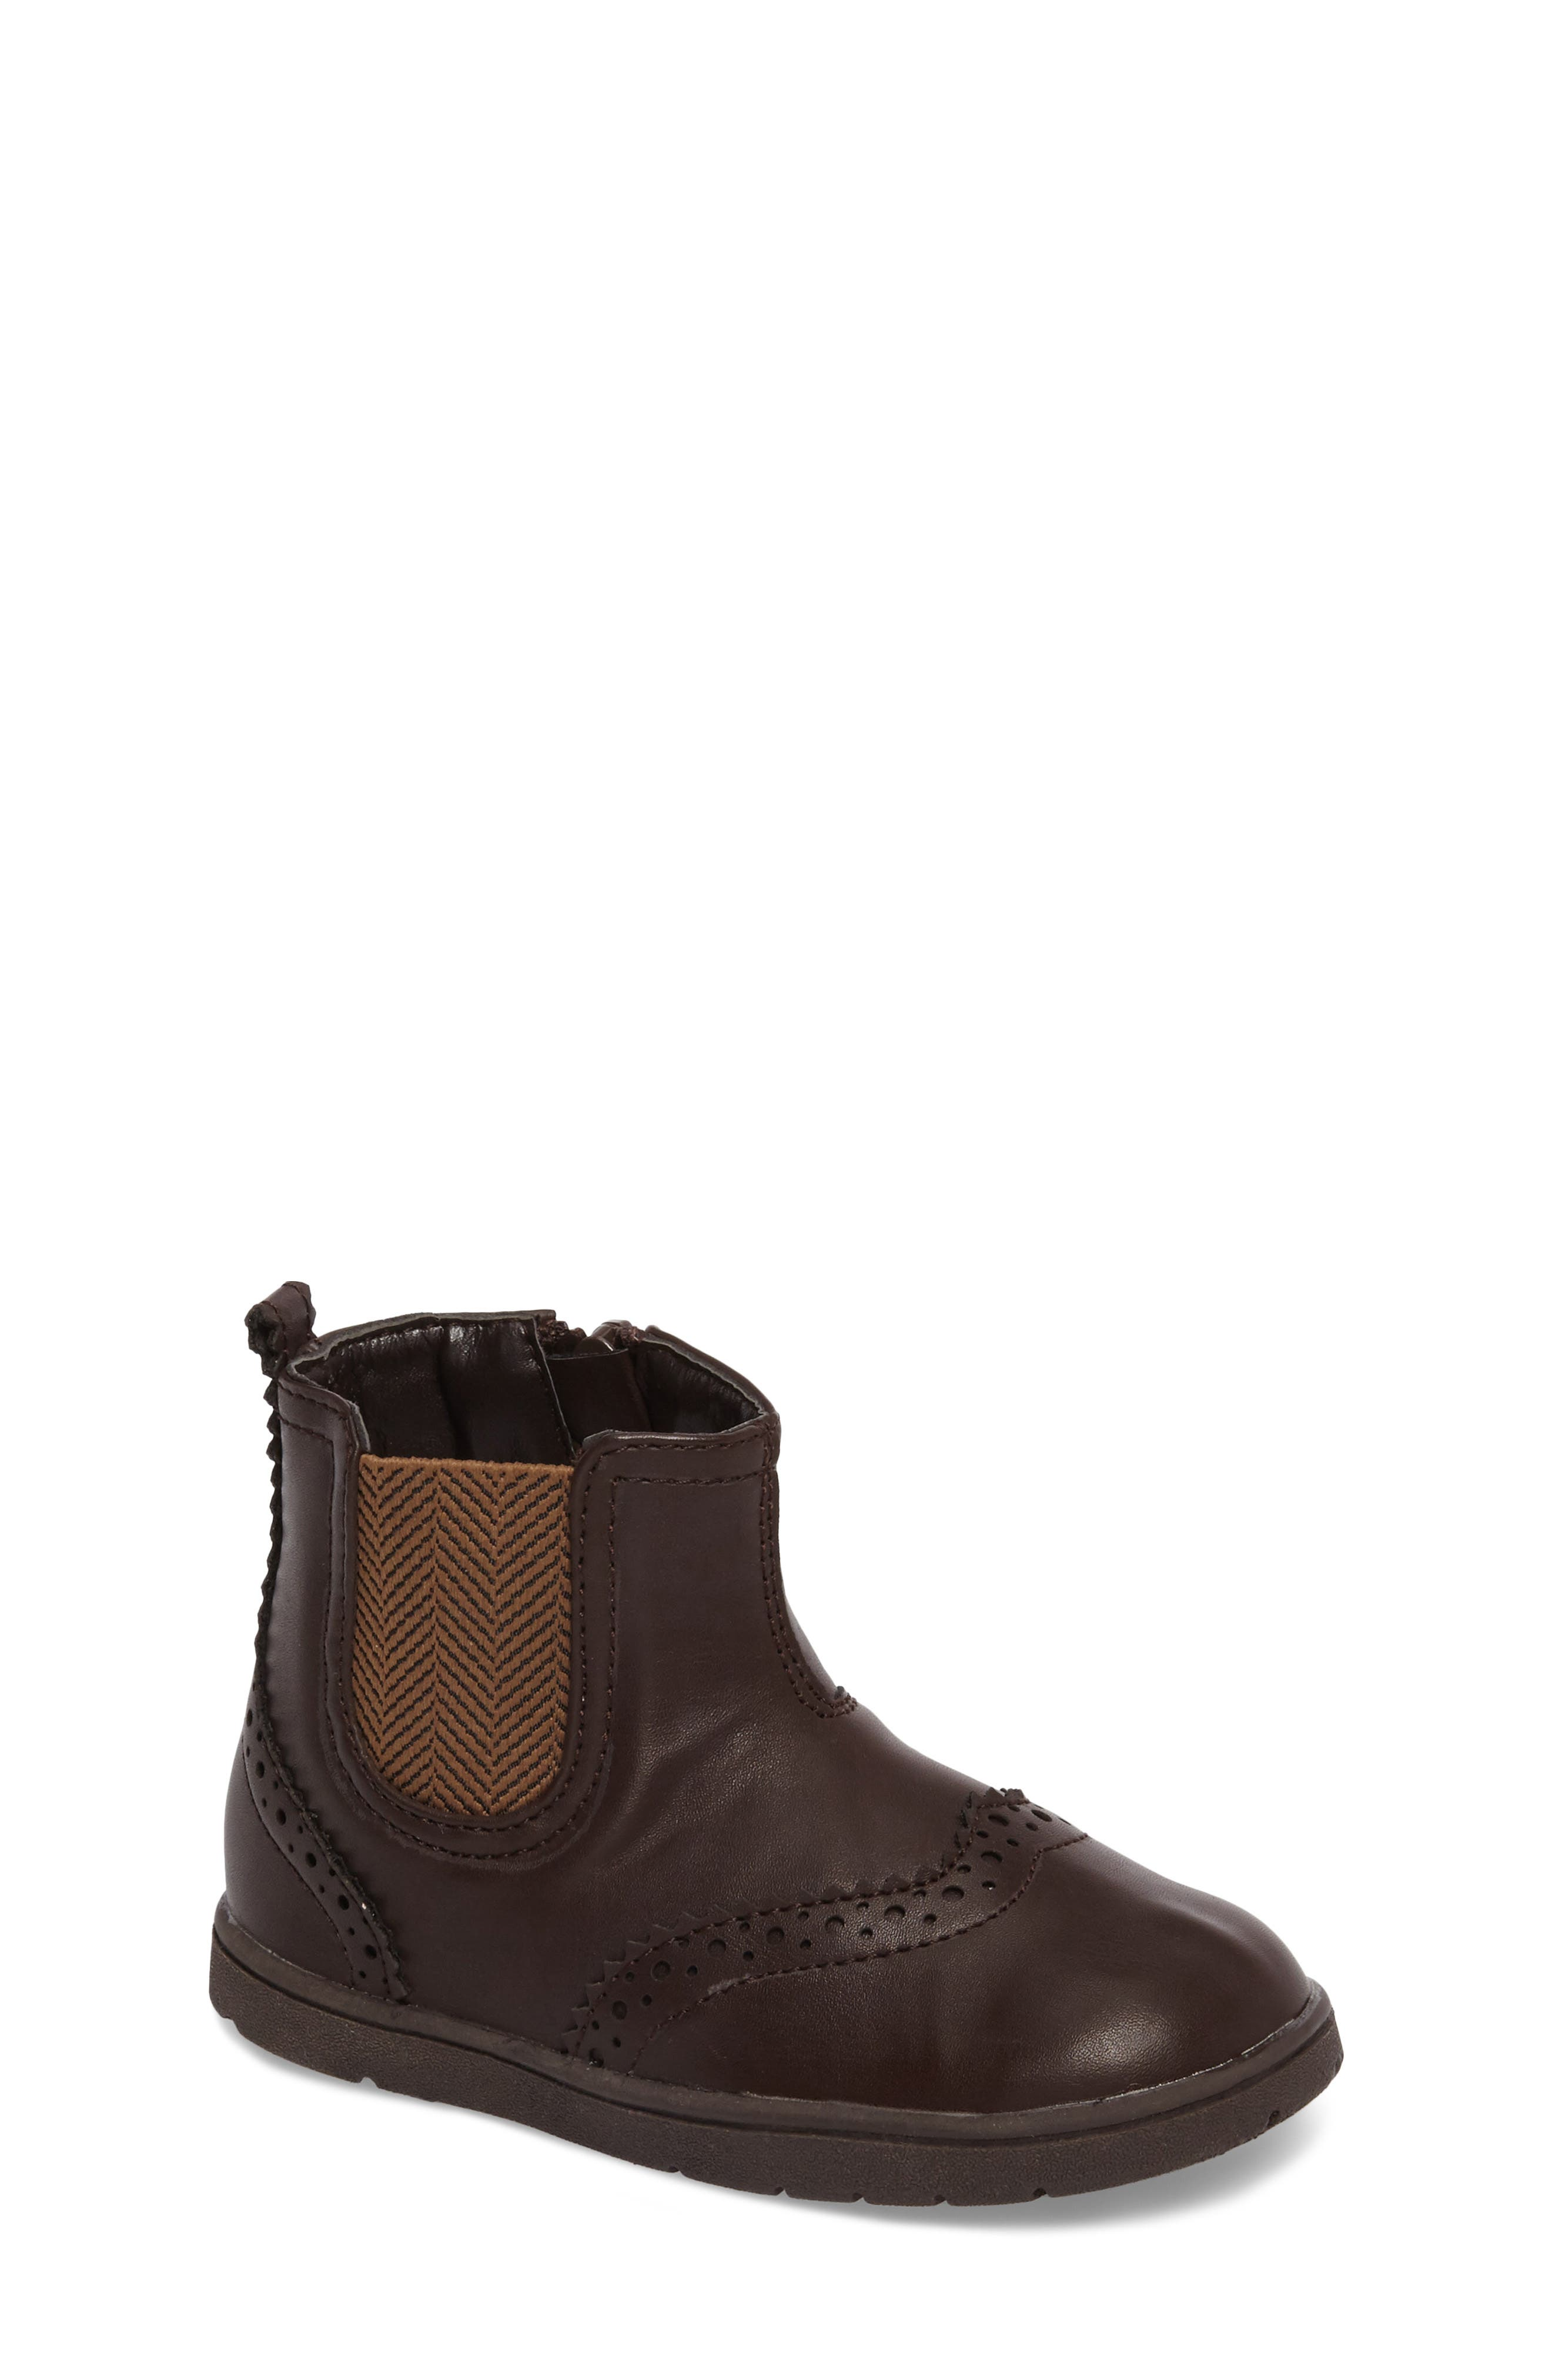 Main Image - Kenneth Cole New York Peace Wing Bootie (Baby, Walker & Toddler)